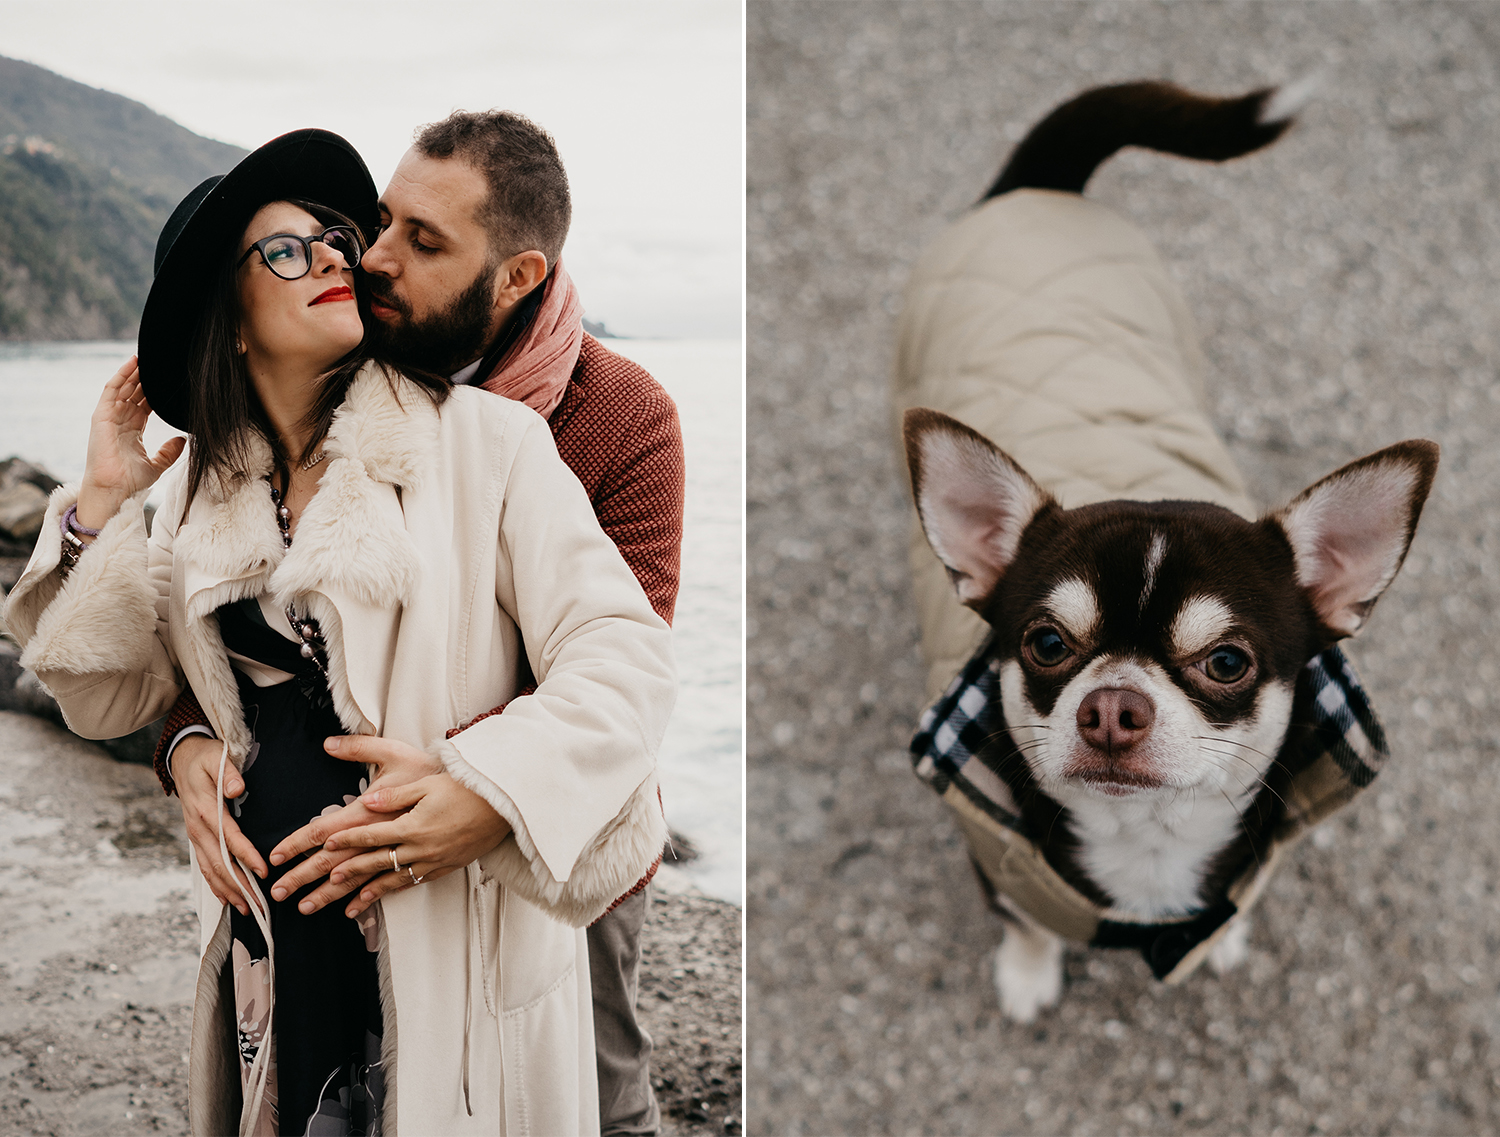 Rebecca Rinaldi maternity photographer in Italy. maternity photo shoot in Camogli, Future dad kissing future mom. and detail ofe dog.